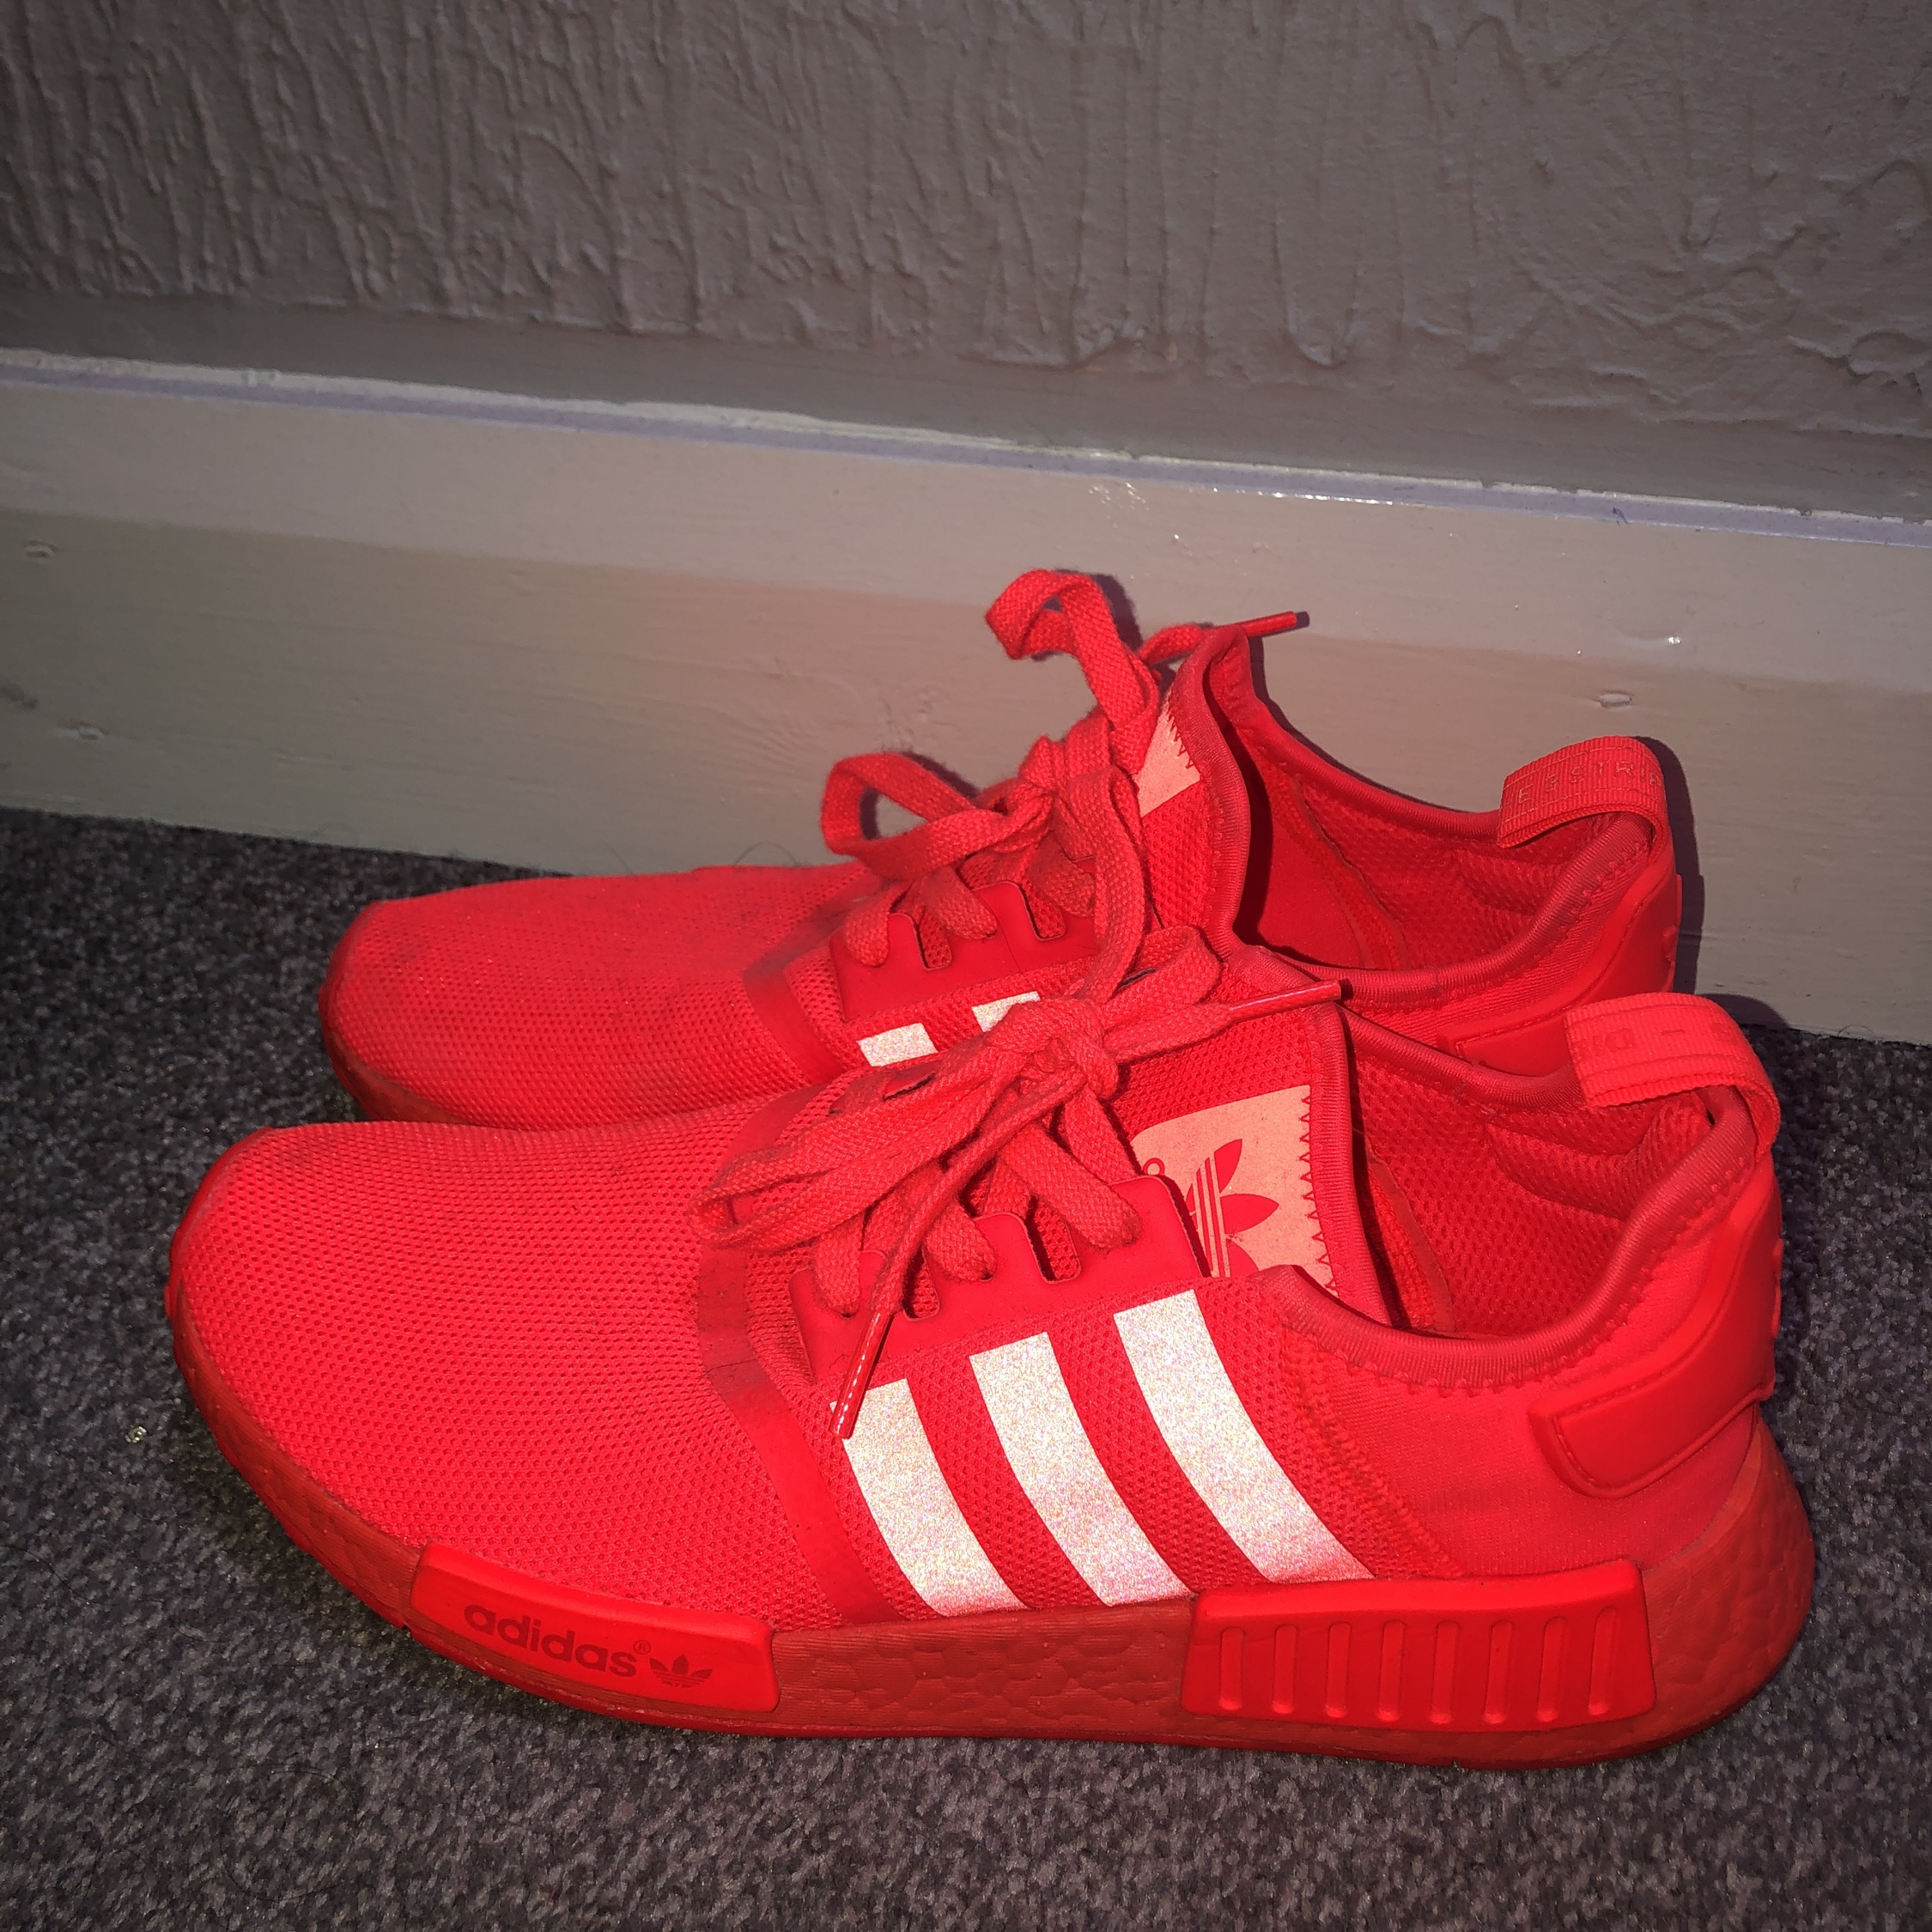 Adidas Nmd Reflective Orange Red Men S Shoes